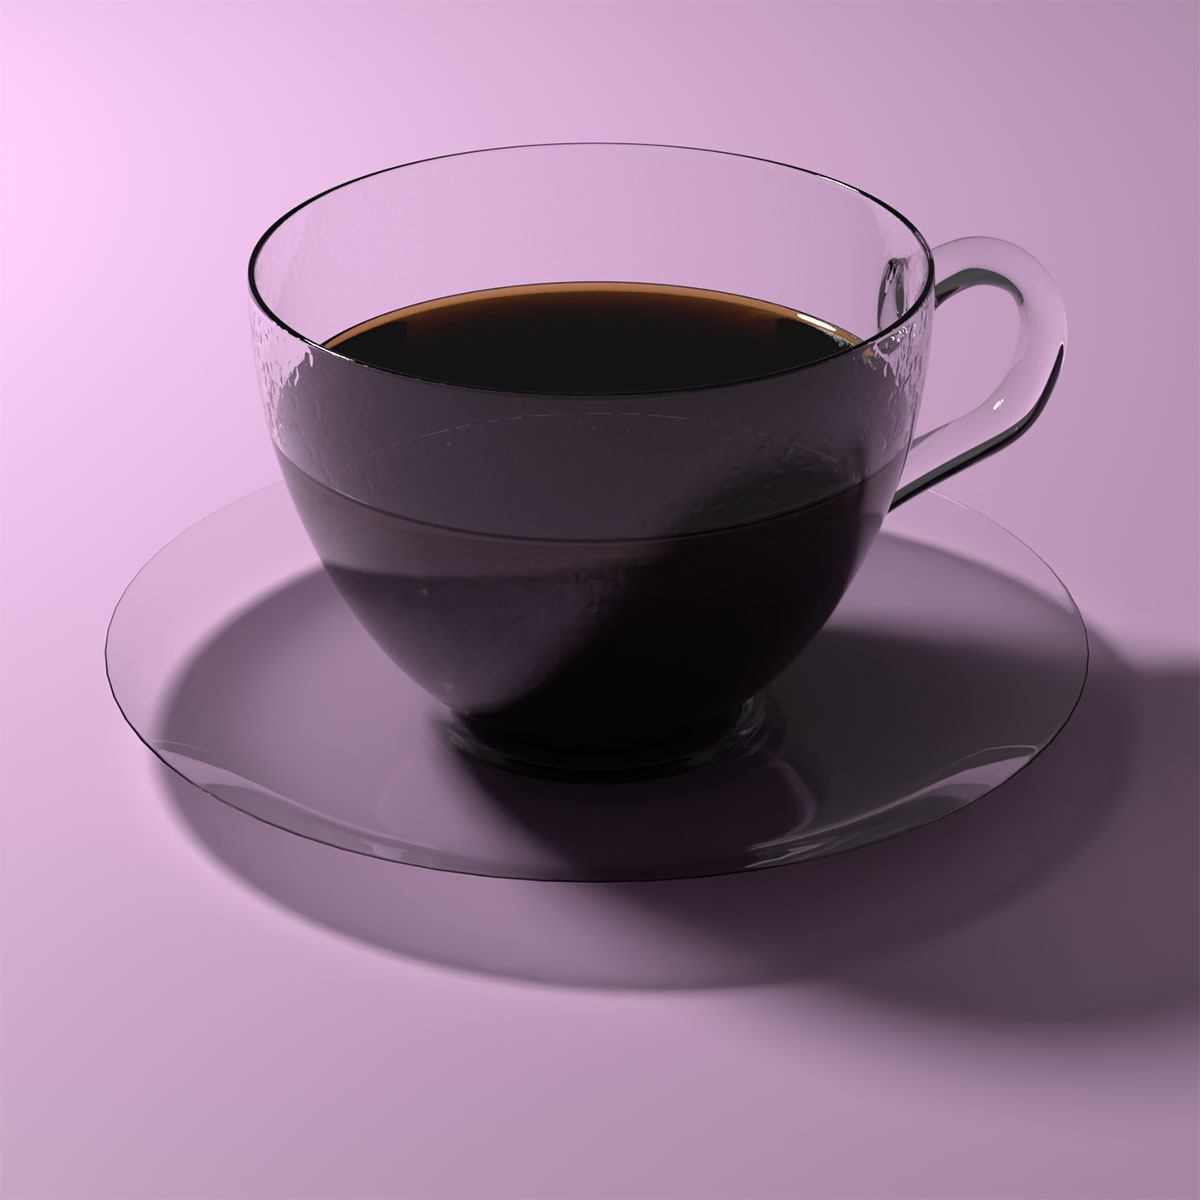 Blender Andrew Price Coffee Cup 3D